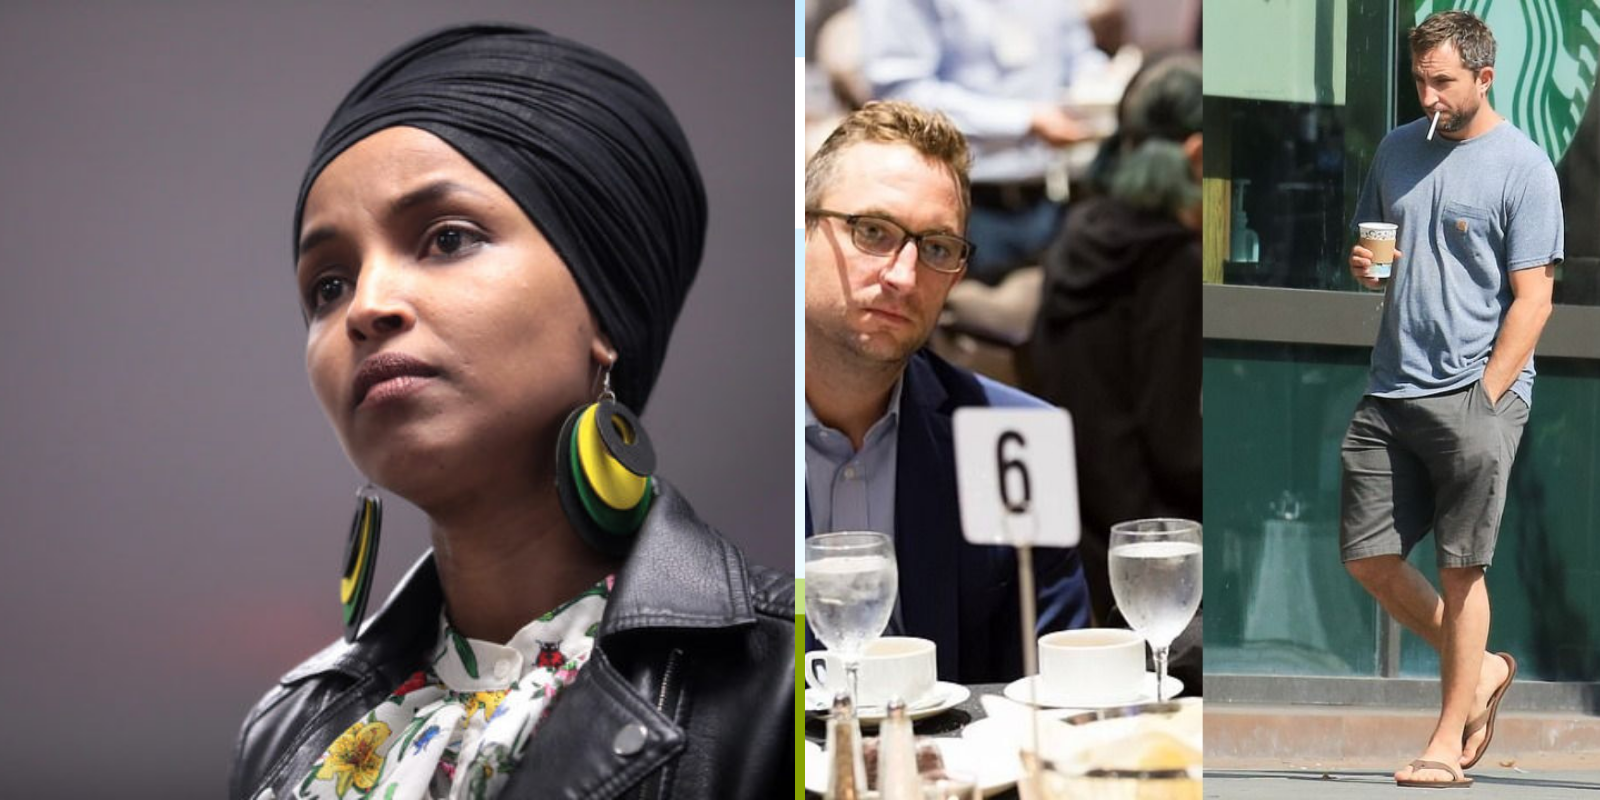 Congresswoman Ilhan Omar hands over $2.7M in campaign funds to husband's company